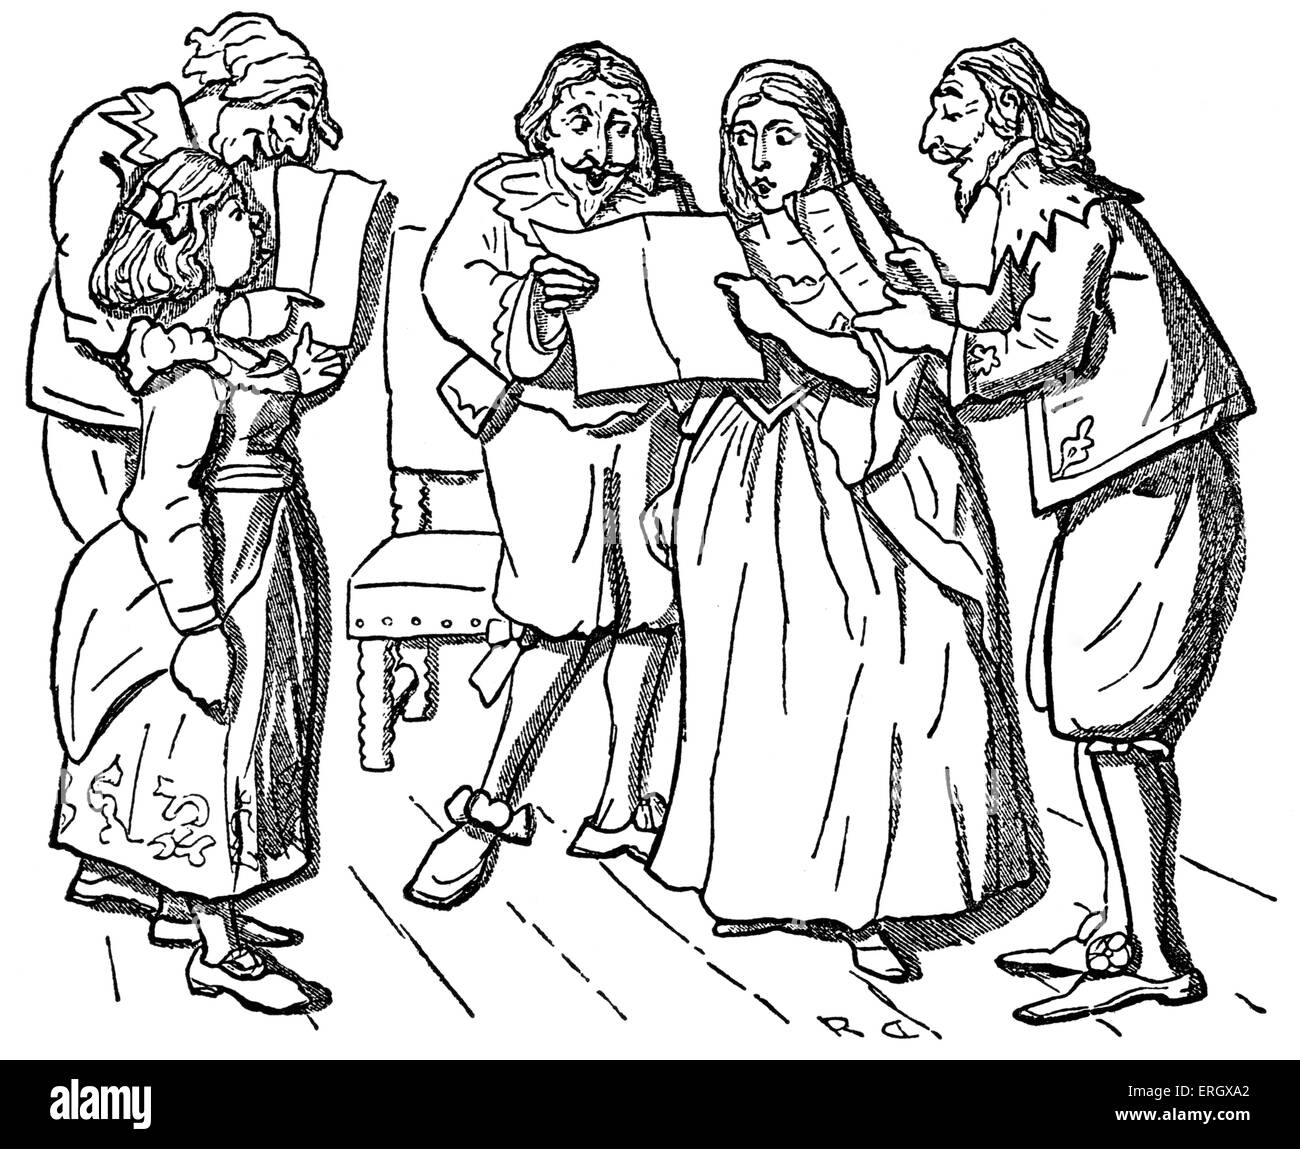 Carol singing in the olden times. - Stock Image